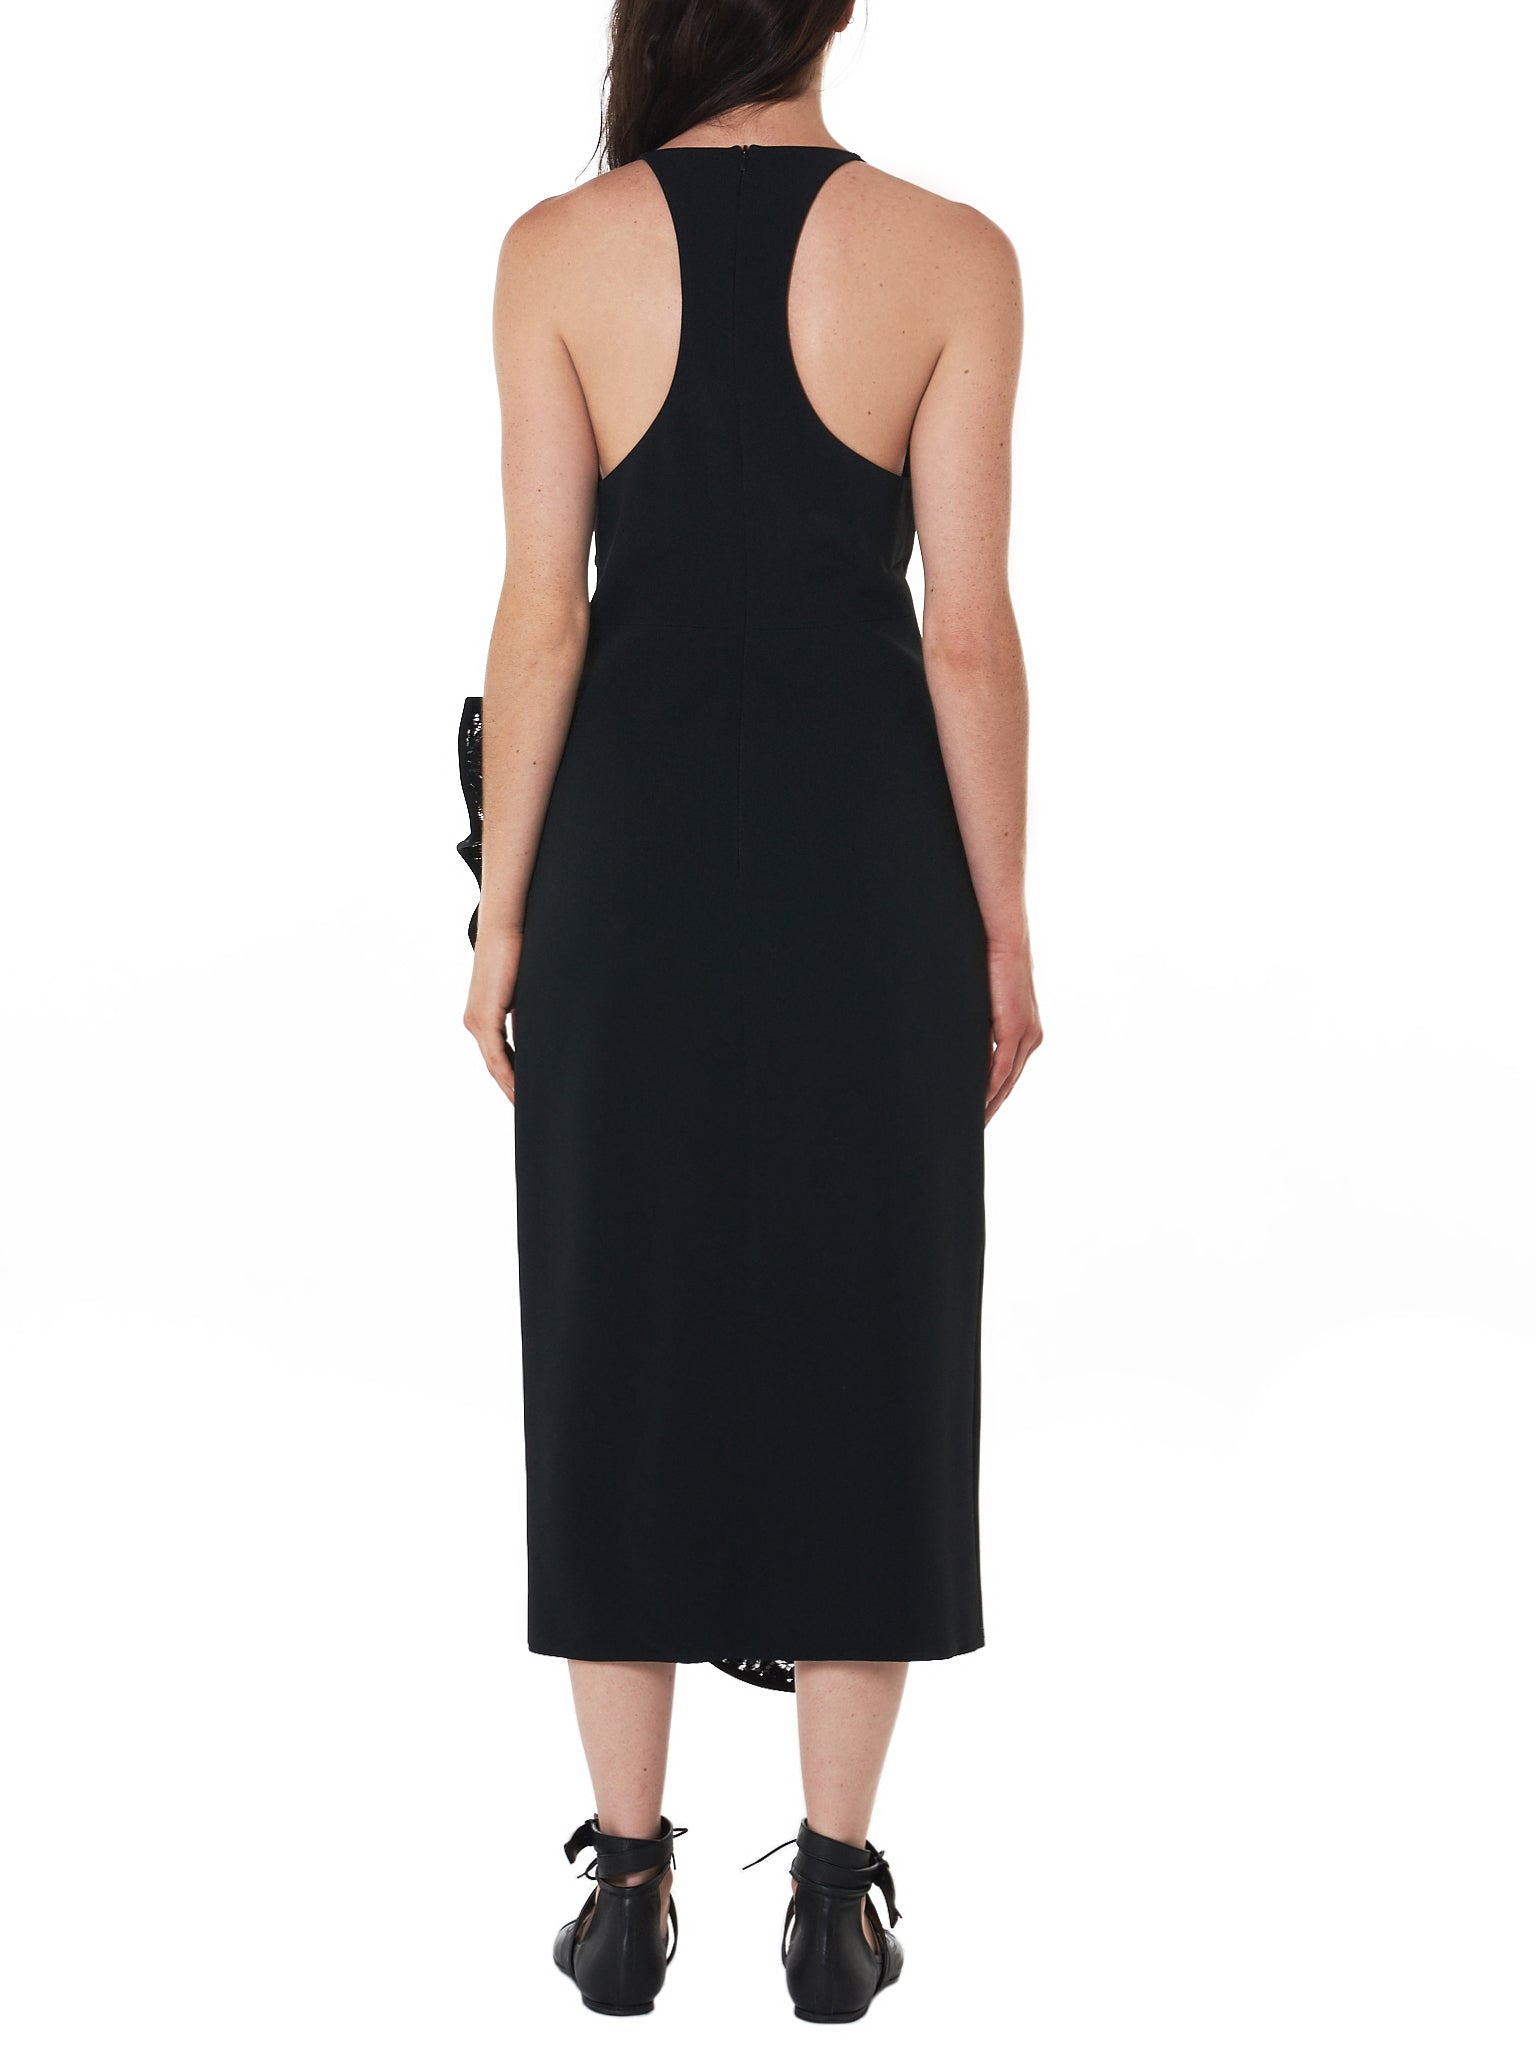 David Koma Dress - Hlorenzo Back